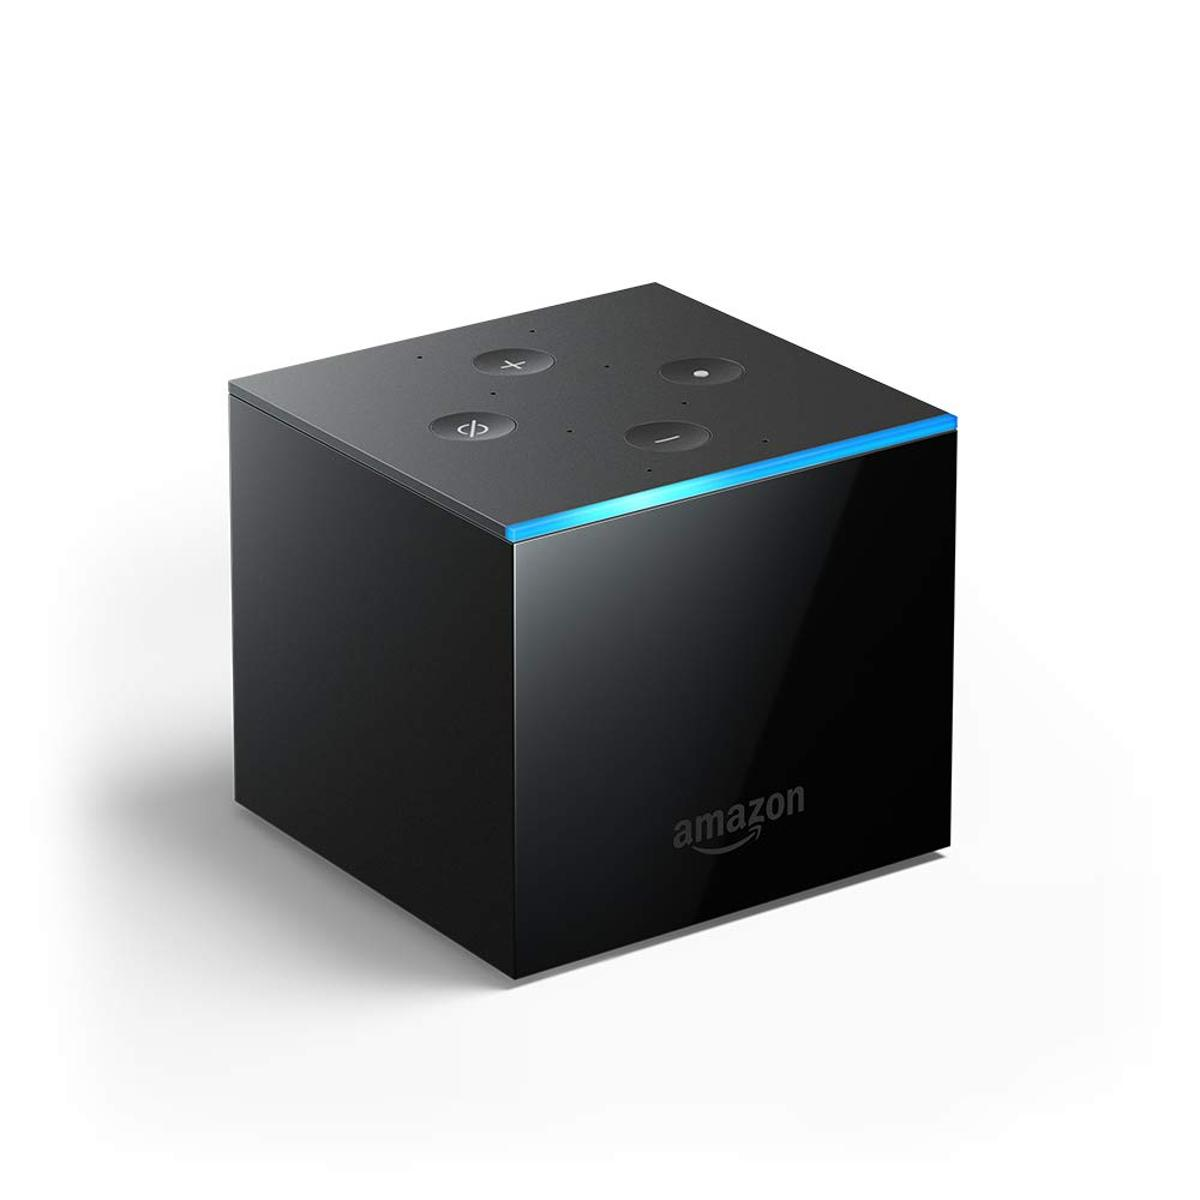 The new Fire TV Cube processes several key voice commands directly within the device, significantly speeding up response times